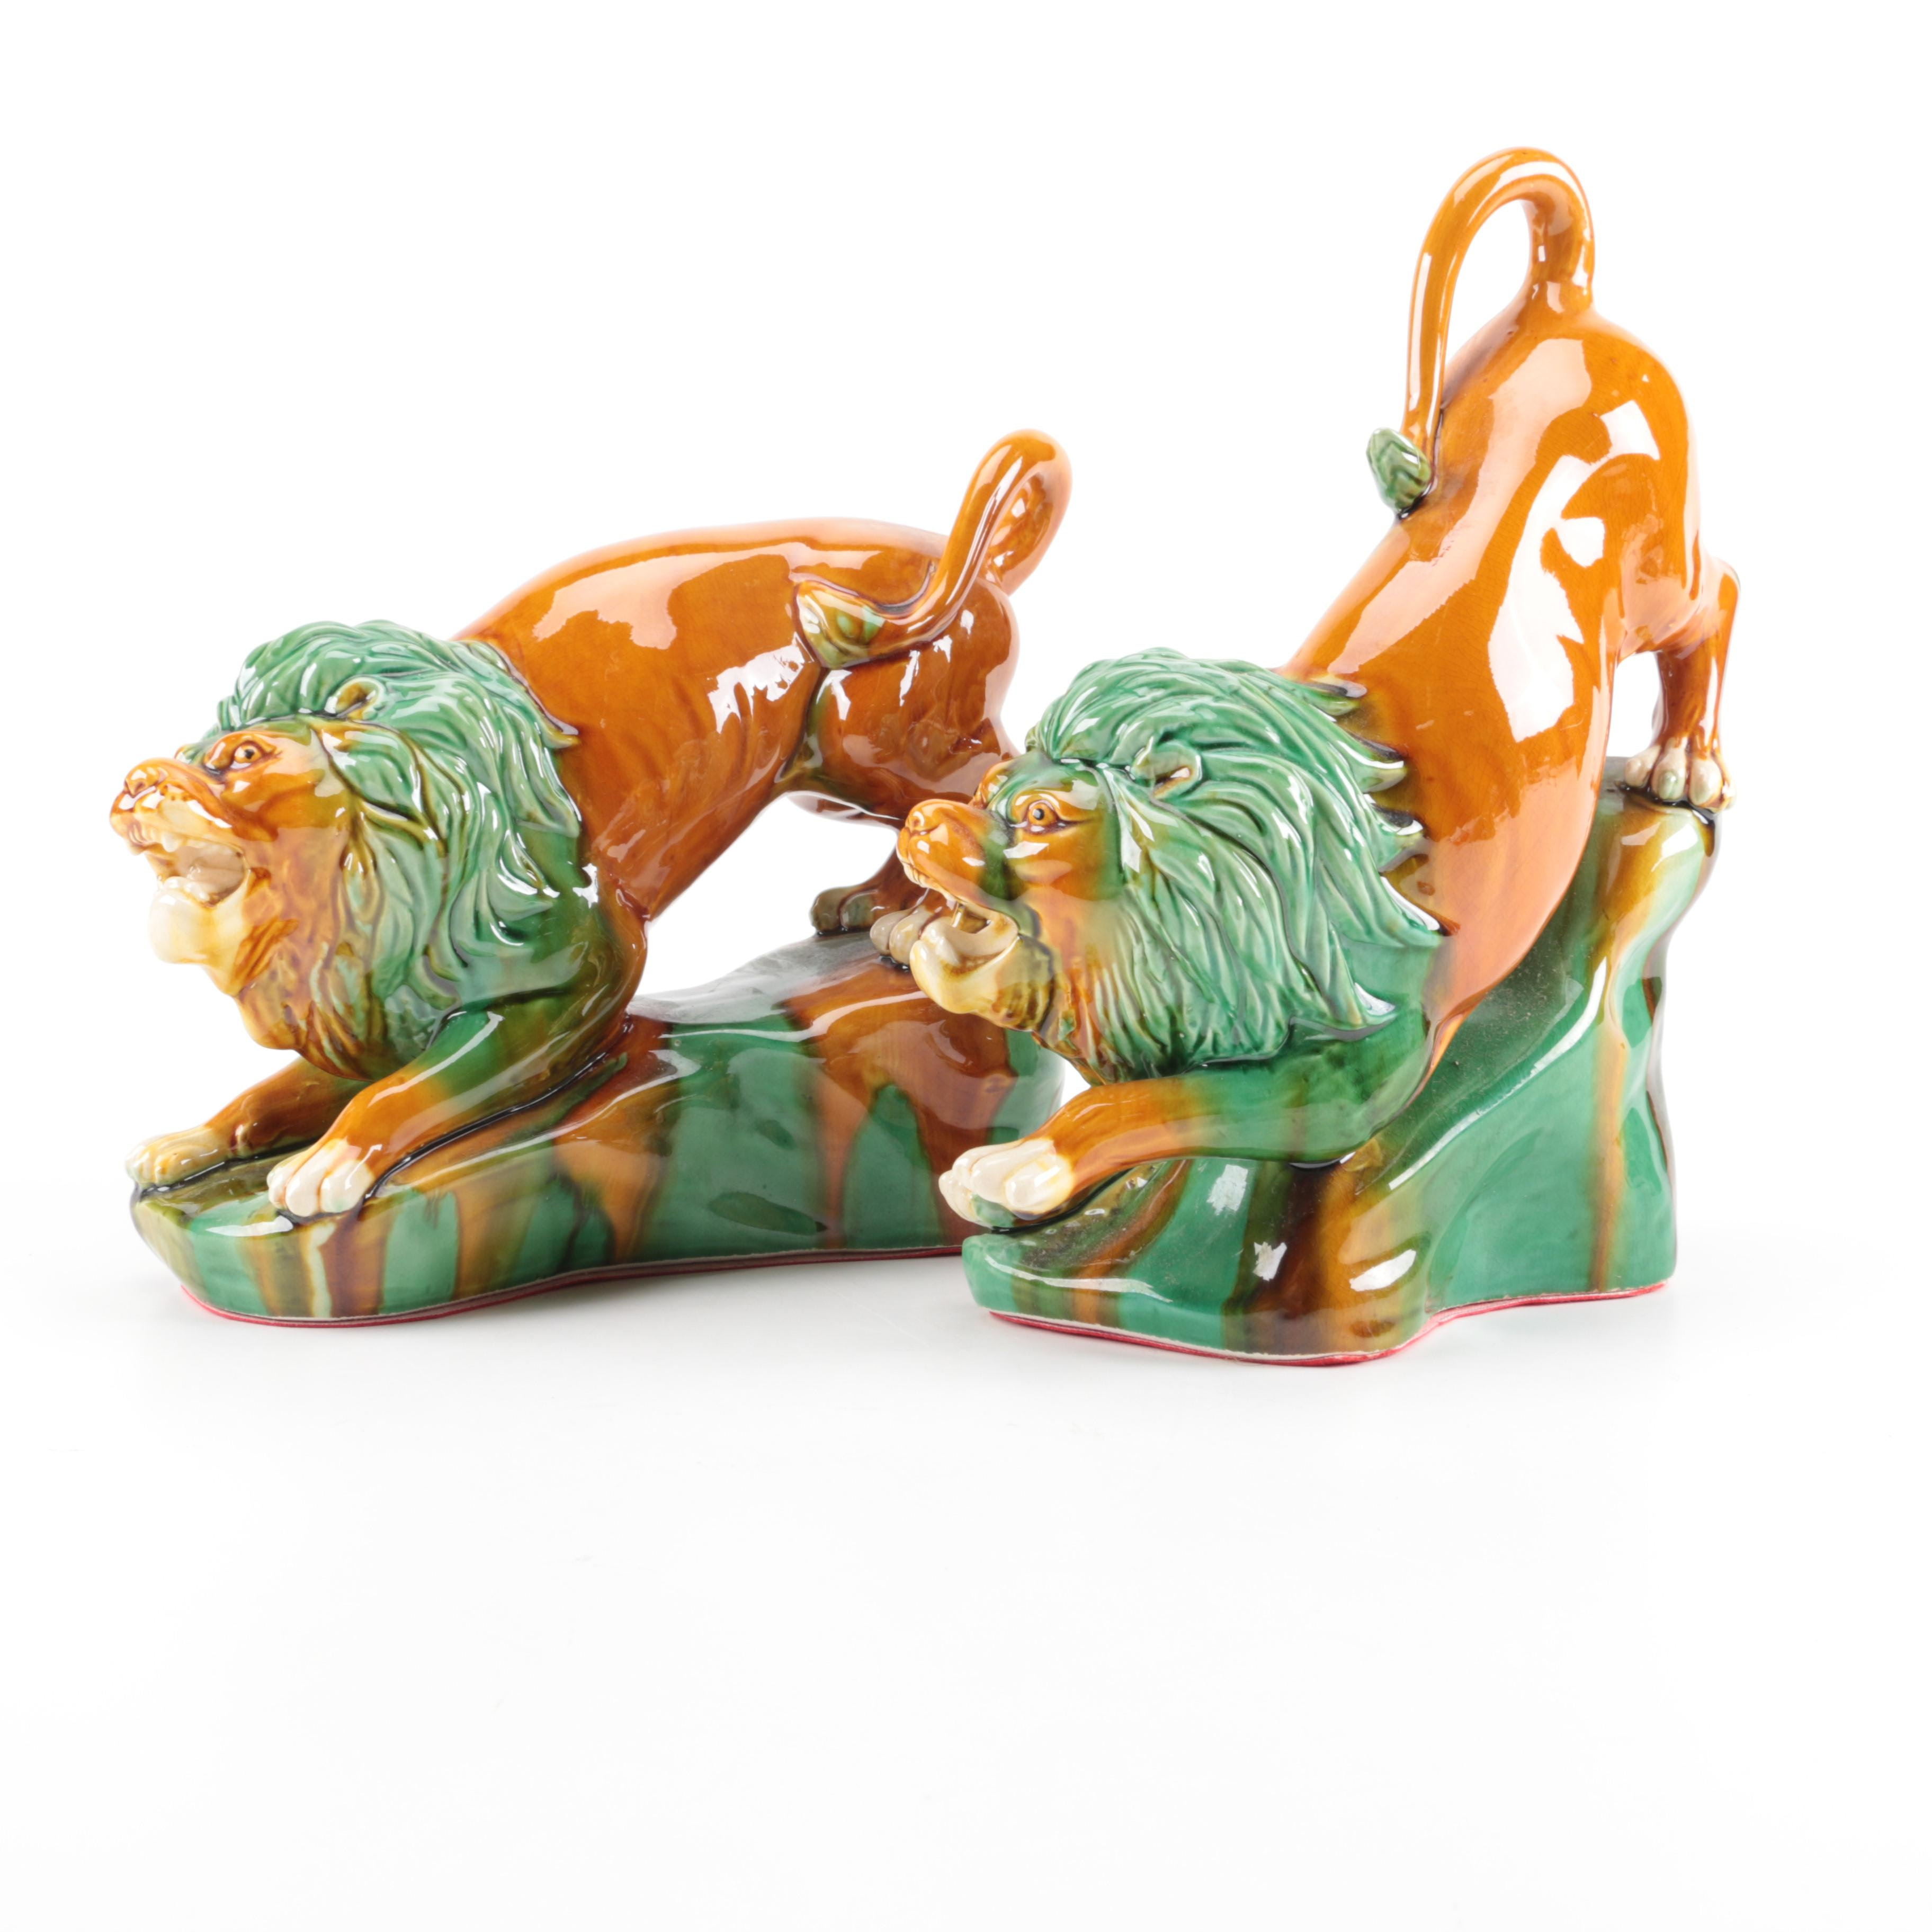 Chinese Ceramic Lion Bookends